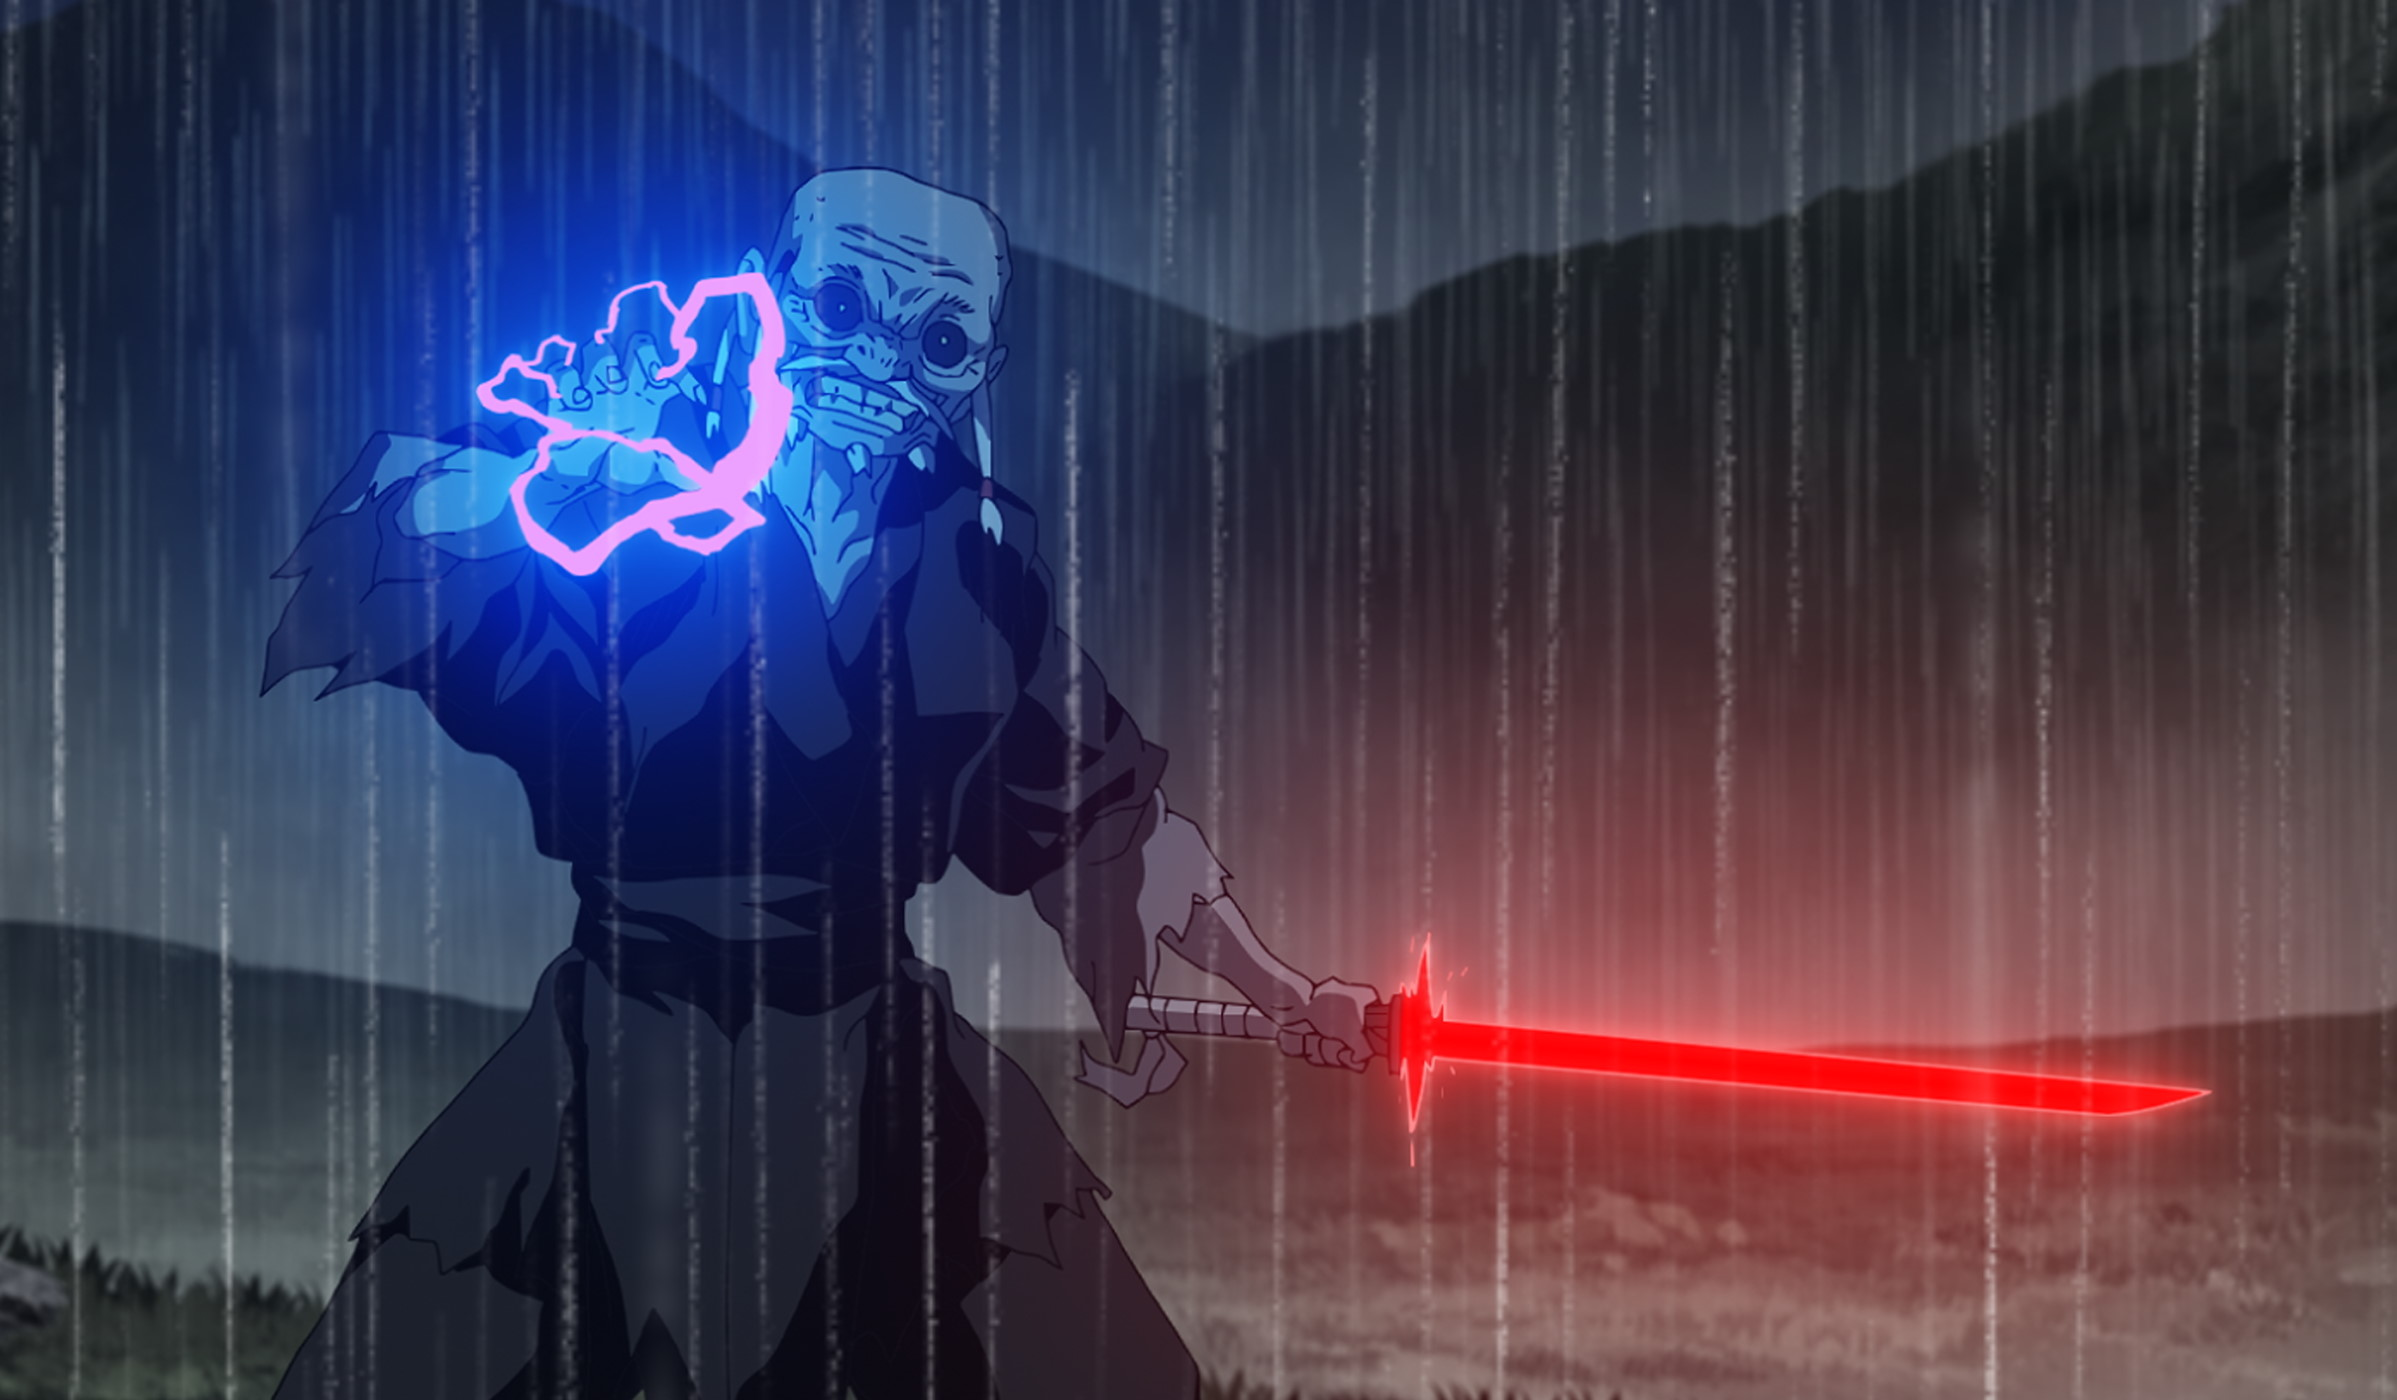 Star Wars: Visions Trailer Impressively Reimagines The Sci-Fi Franchise In Anime Form